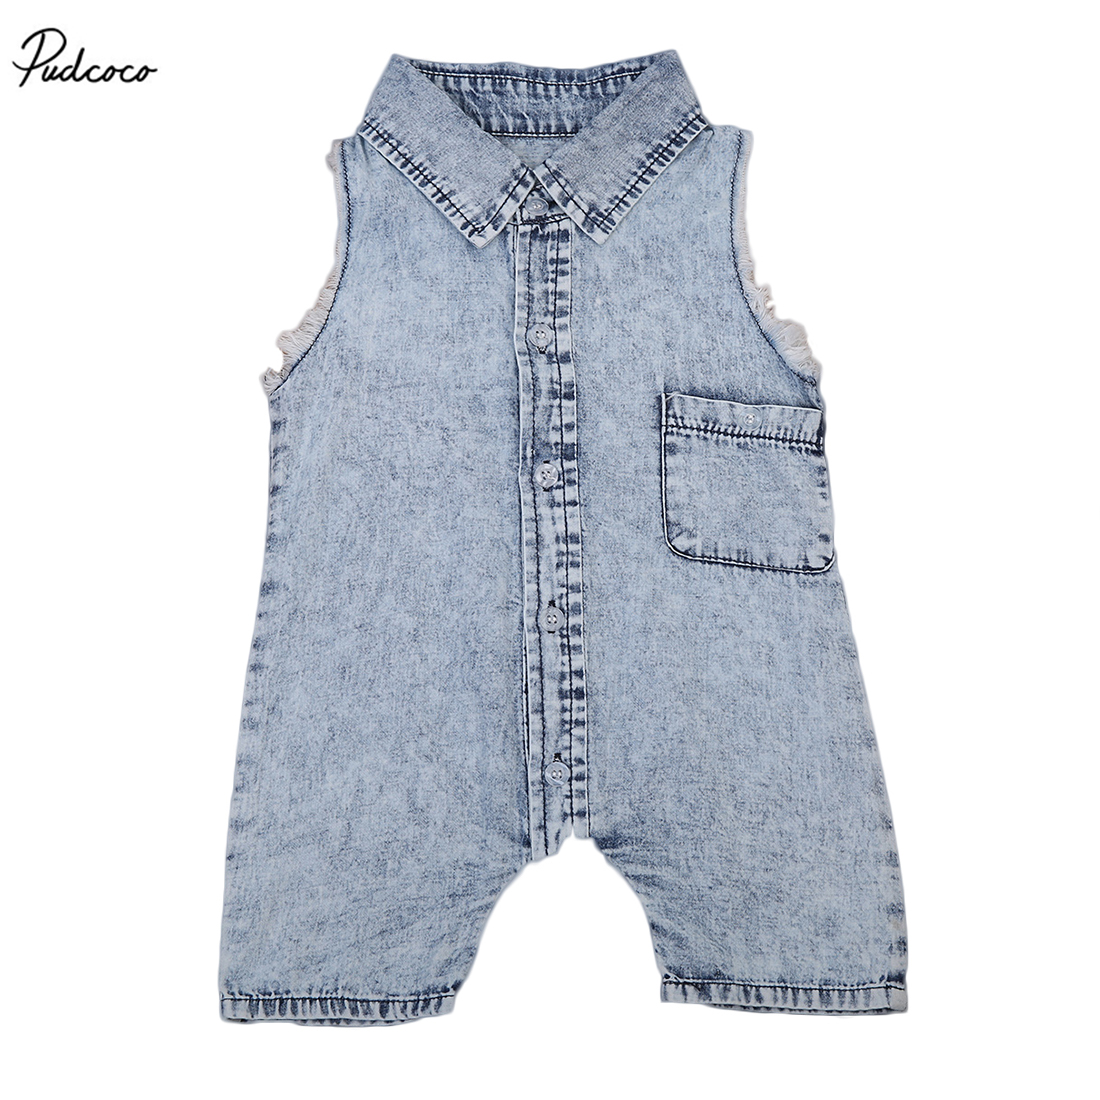 Denim Newborn Baby 2017 New Summer Sleeveless   Romper   Infant Boys Girls Clothes Outfit